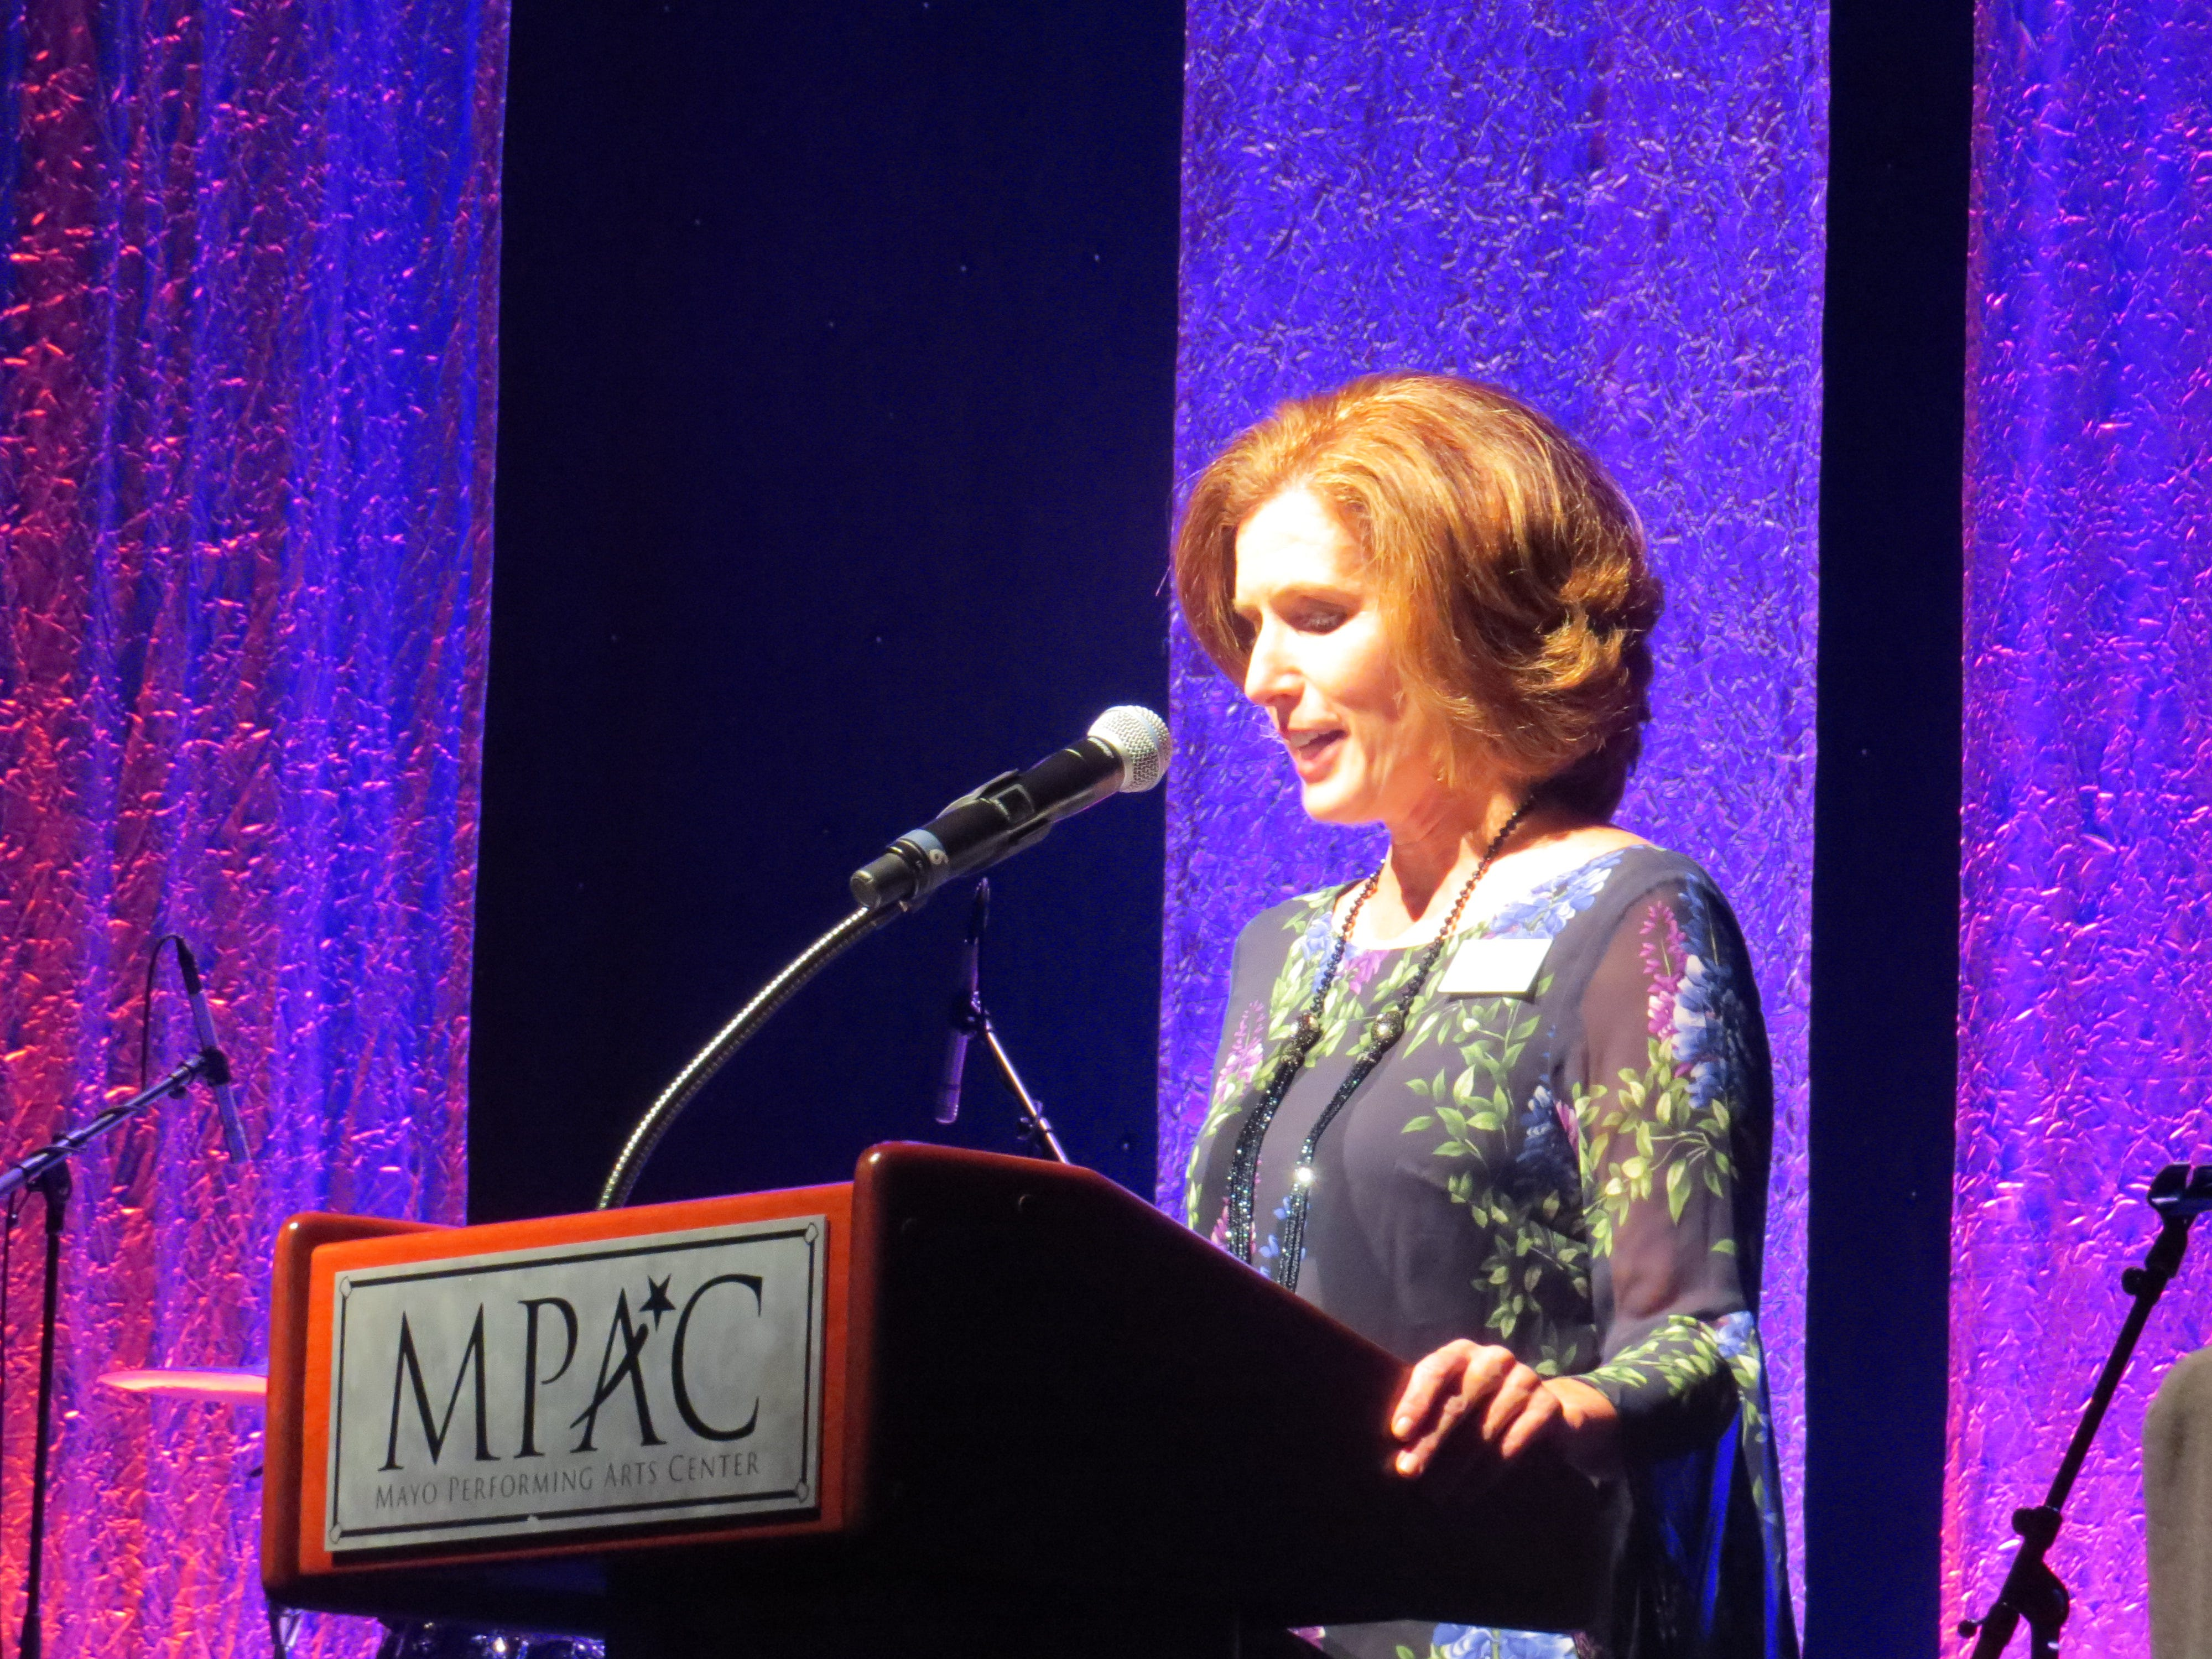 Opening night of the 2018-19 season at the Mayo Performing Arts Center in Morristown: MPAC President-CEO Allison Larena welcomes the audience.